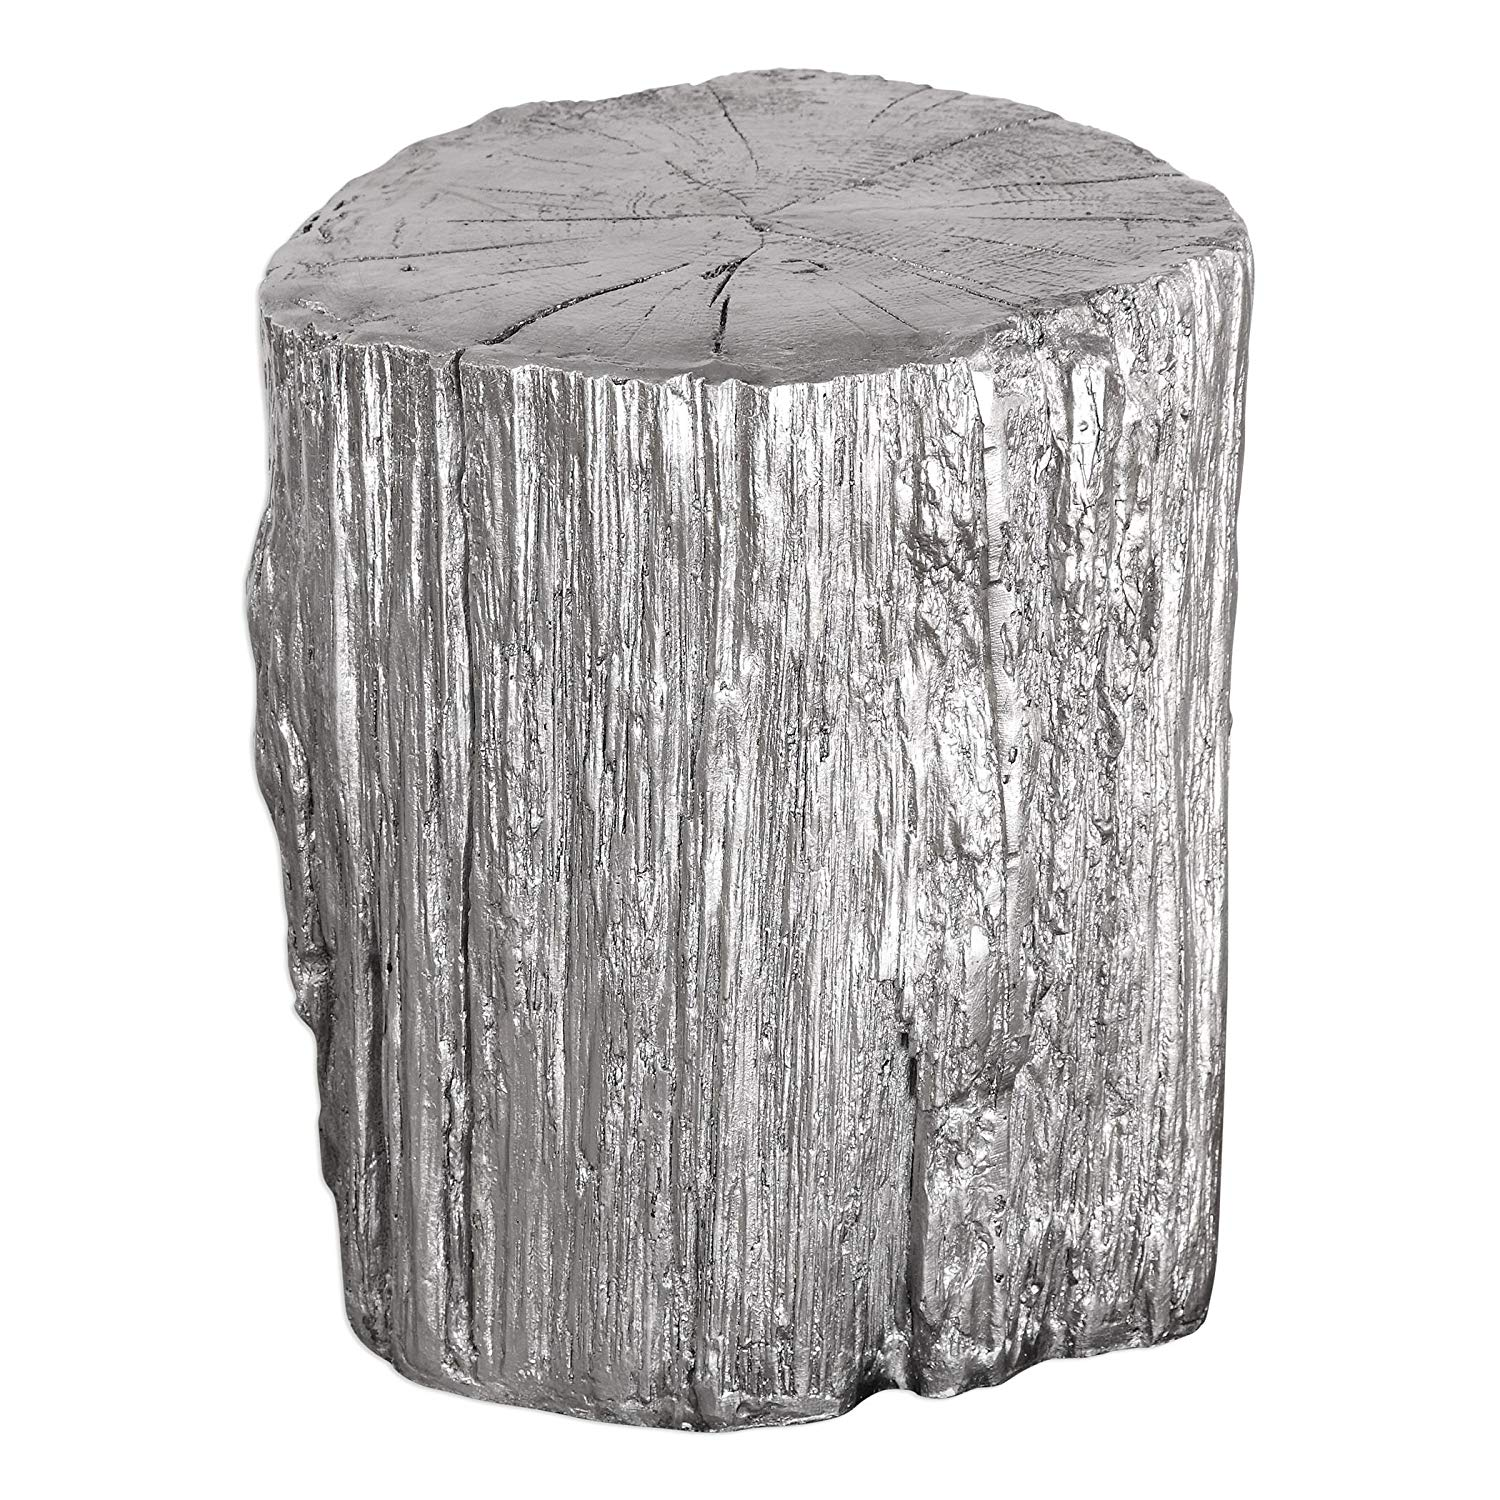 elegant silver tree stump accent table pedestal round tall faux bois trunk naturalist kitchen dining with drink cooler cube side wicker furniture set clearance very narrow coffee